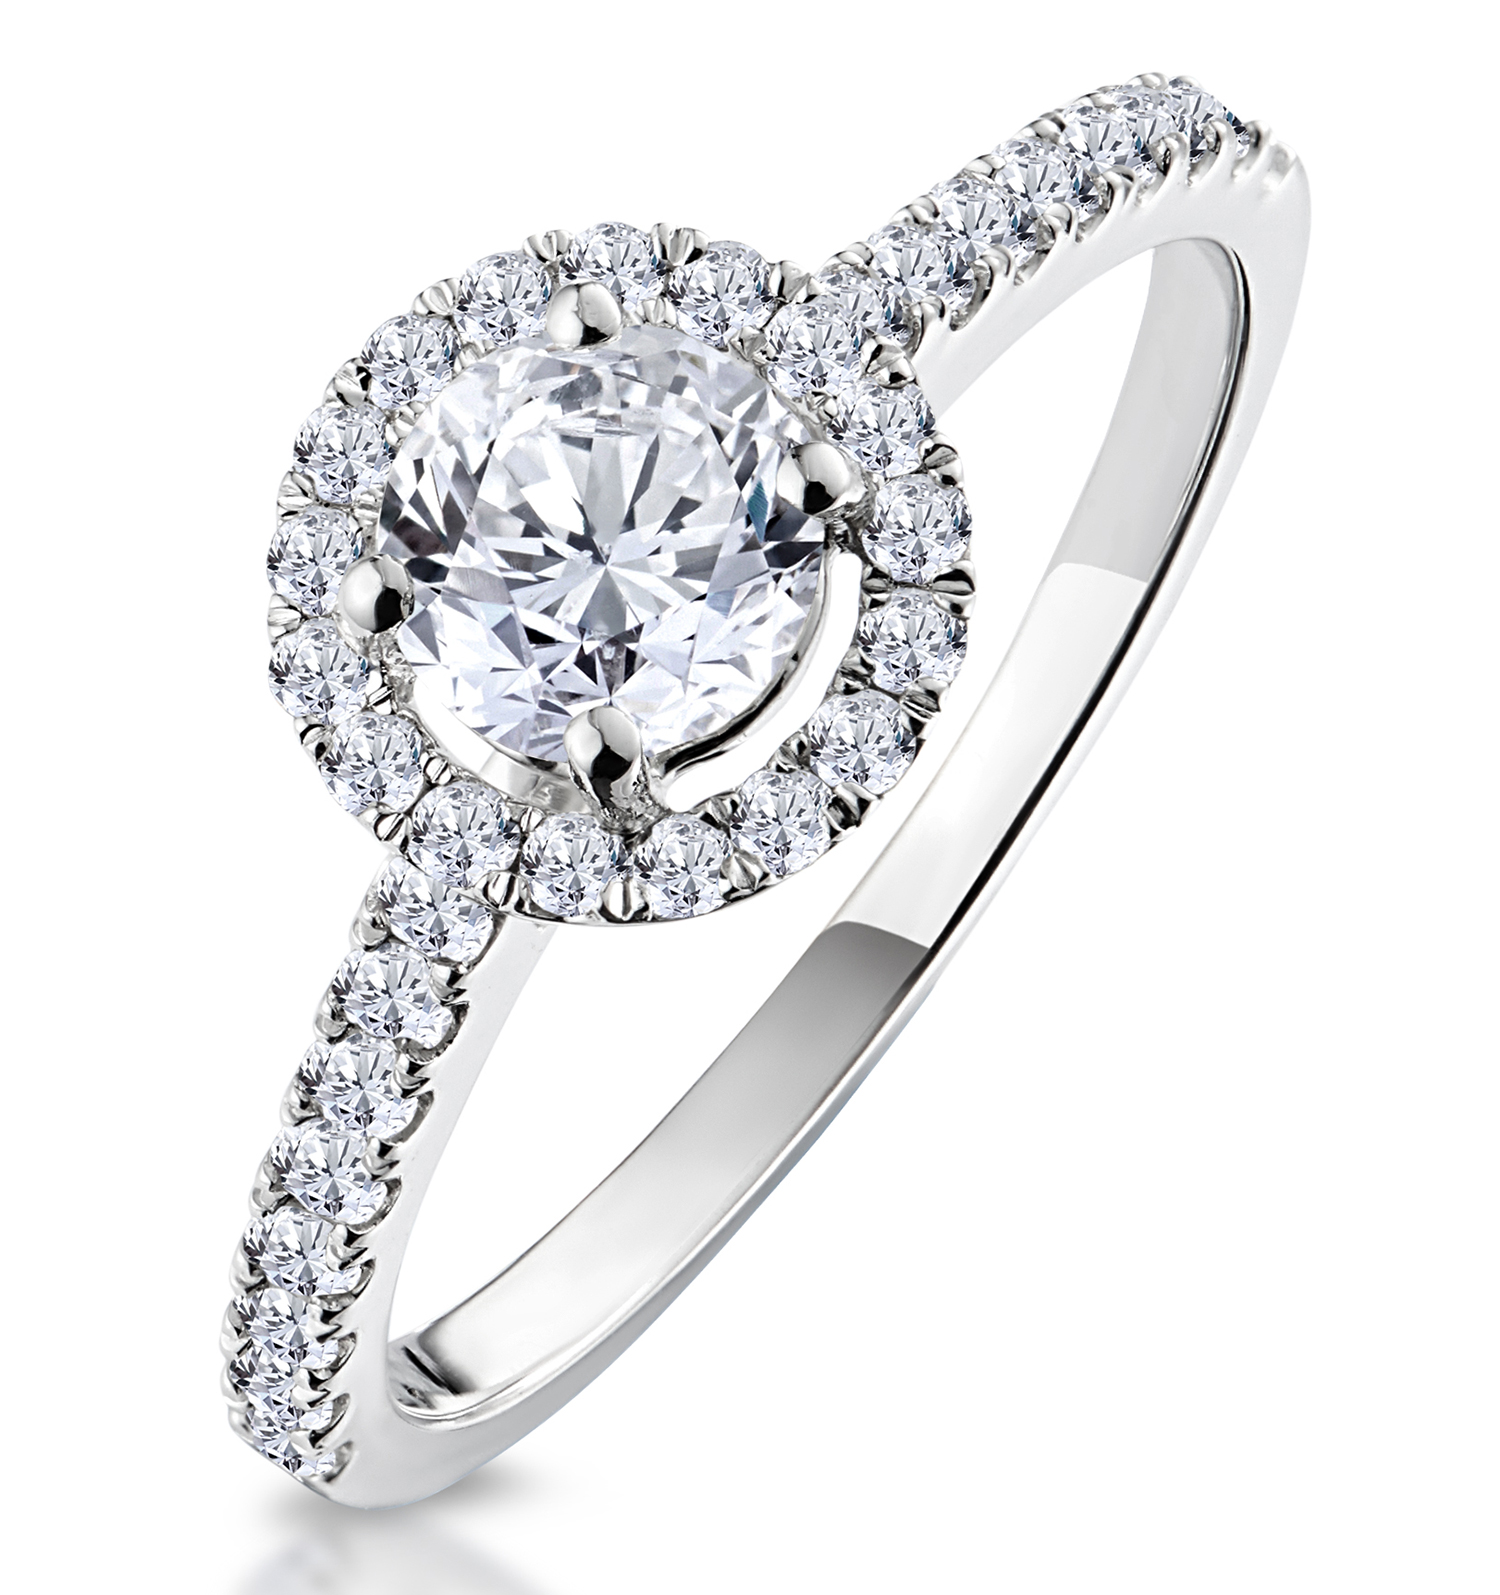 Ella Halo Diamond Engagement Ring 18k White Gold Size L